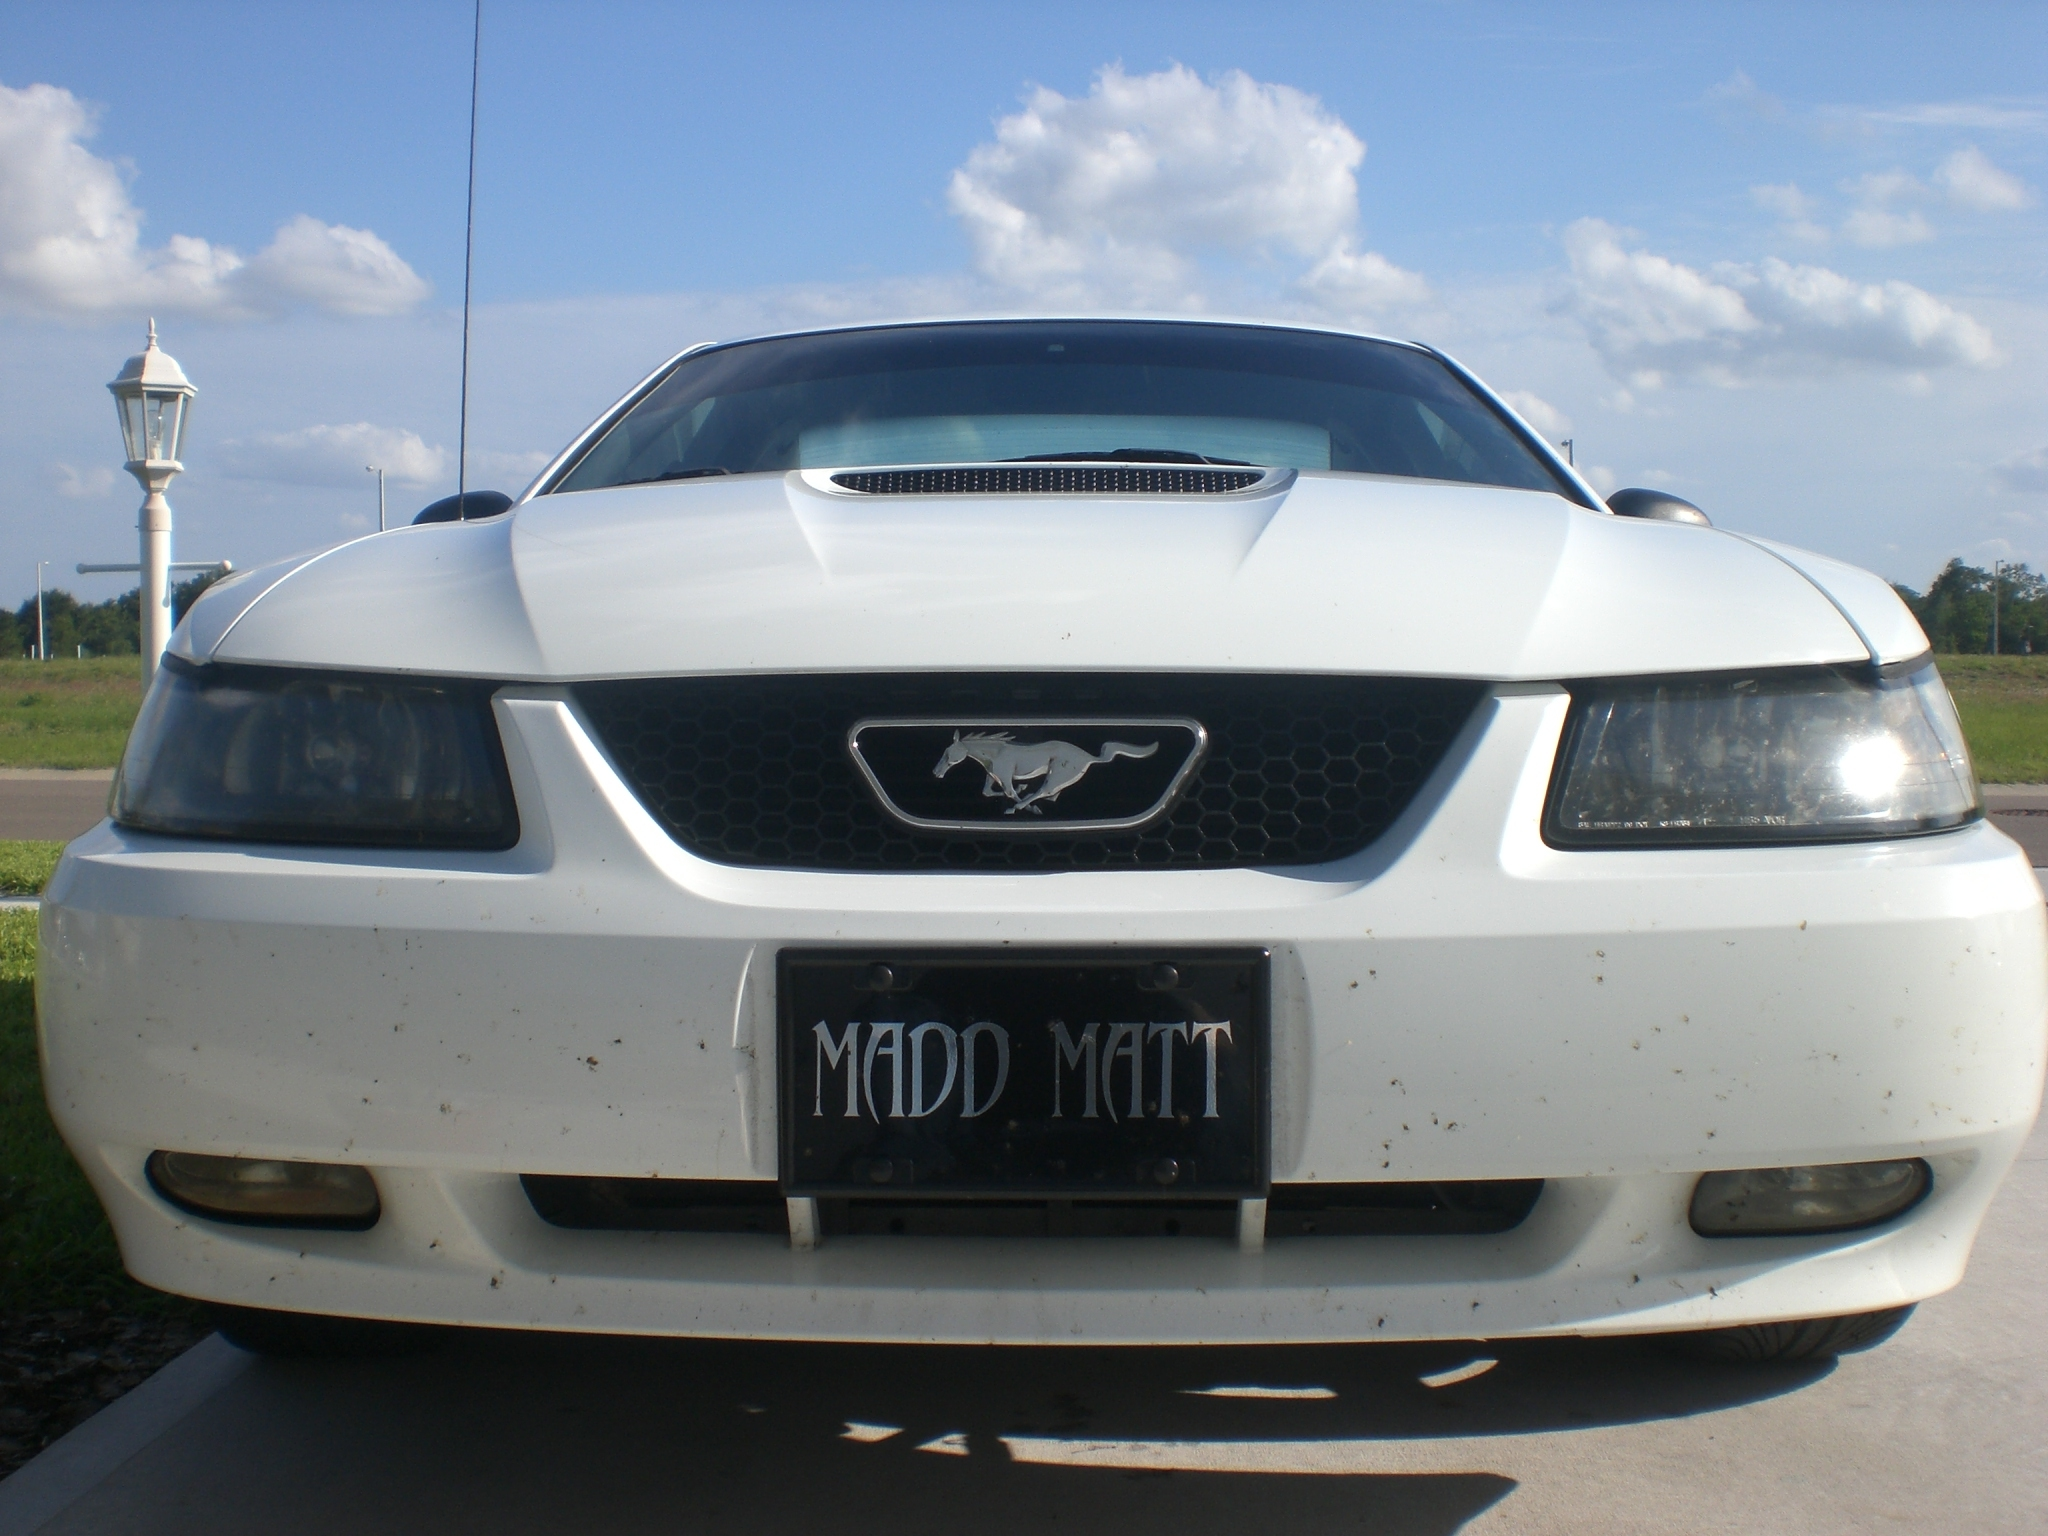 mattsblackmax 39 s 1999 ford mustang in winter haven fl. Black Bedroom Furniture Sets. Home Design Ideas